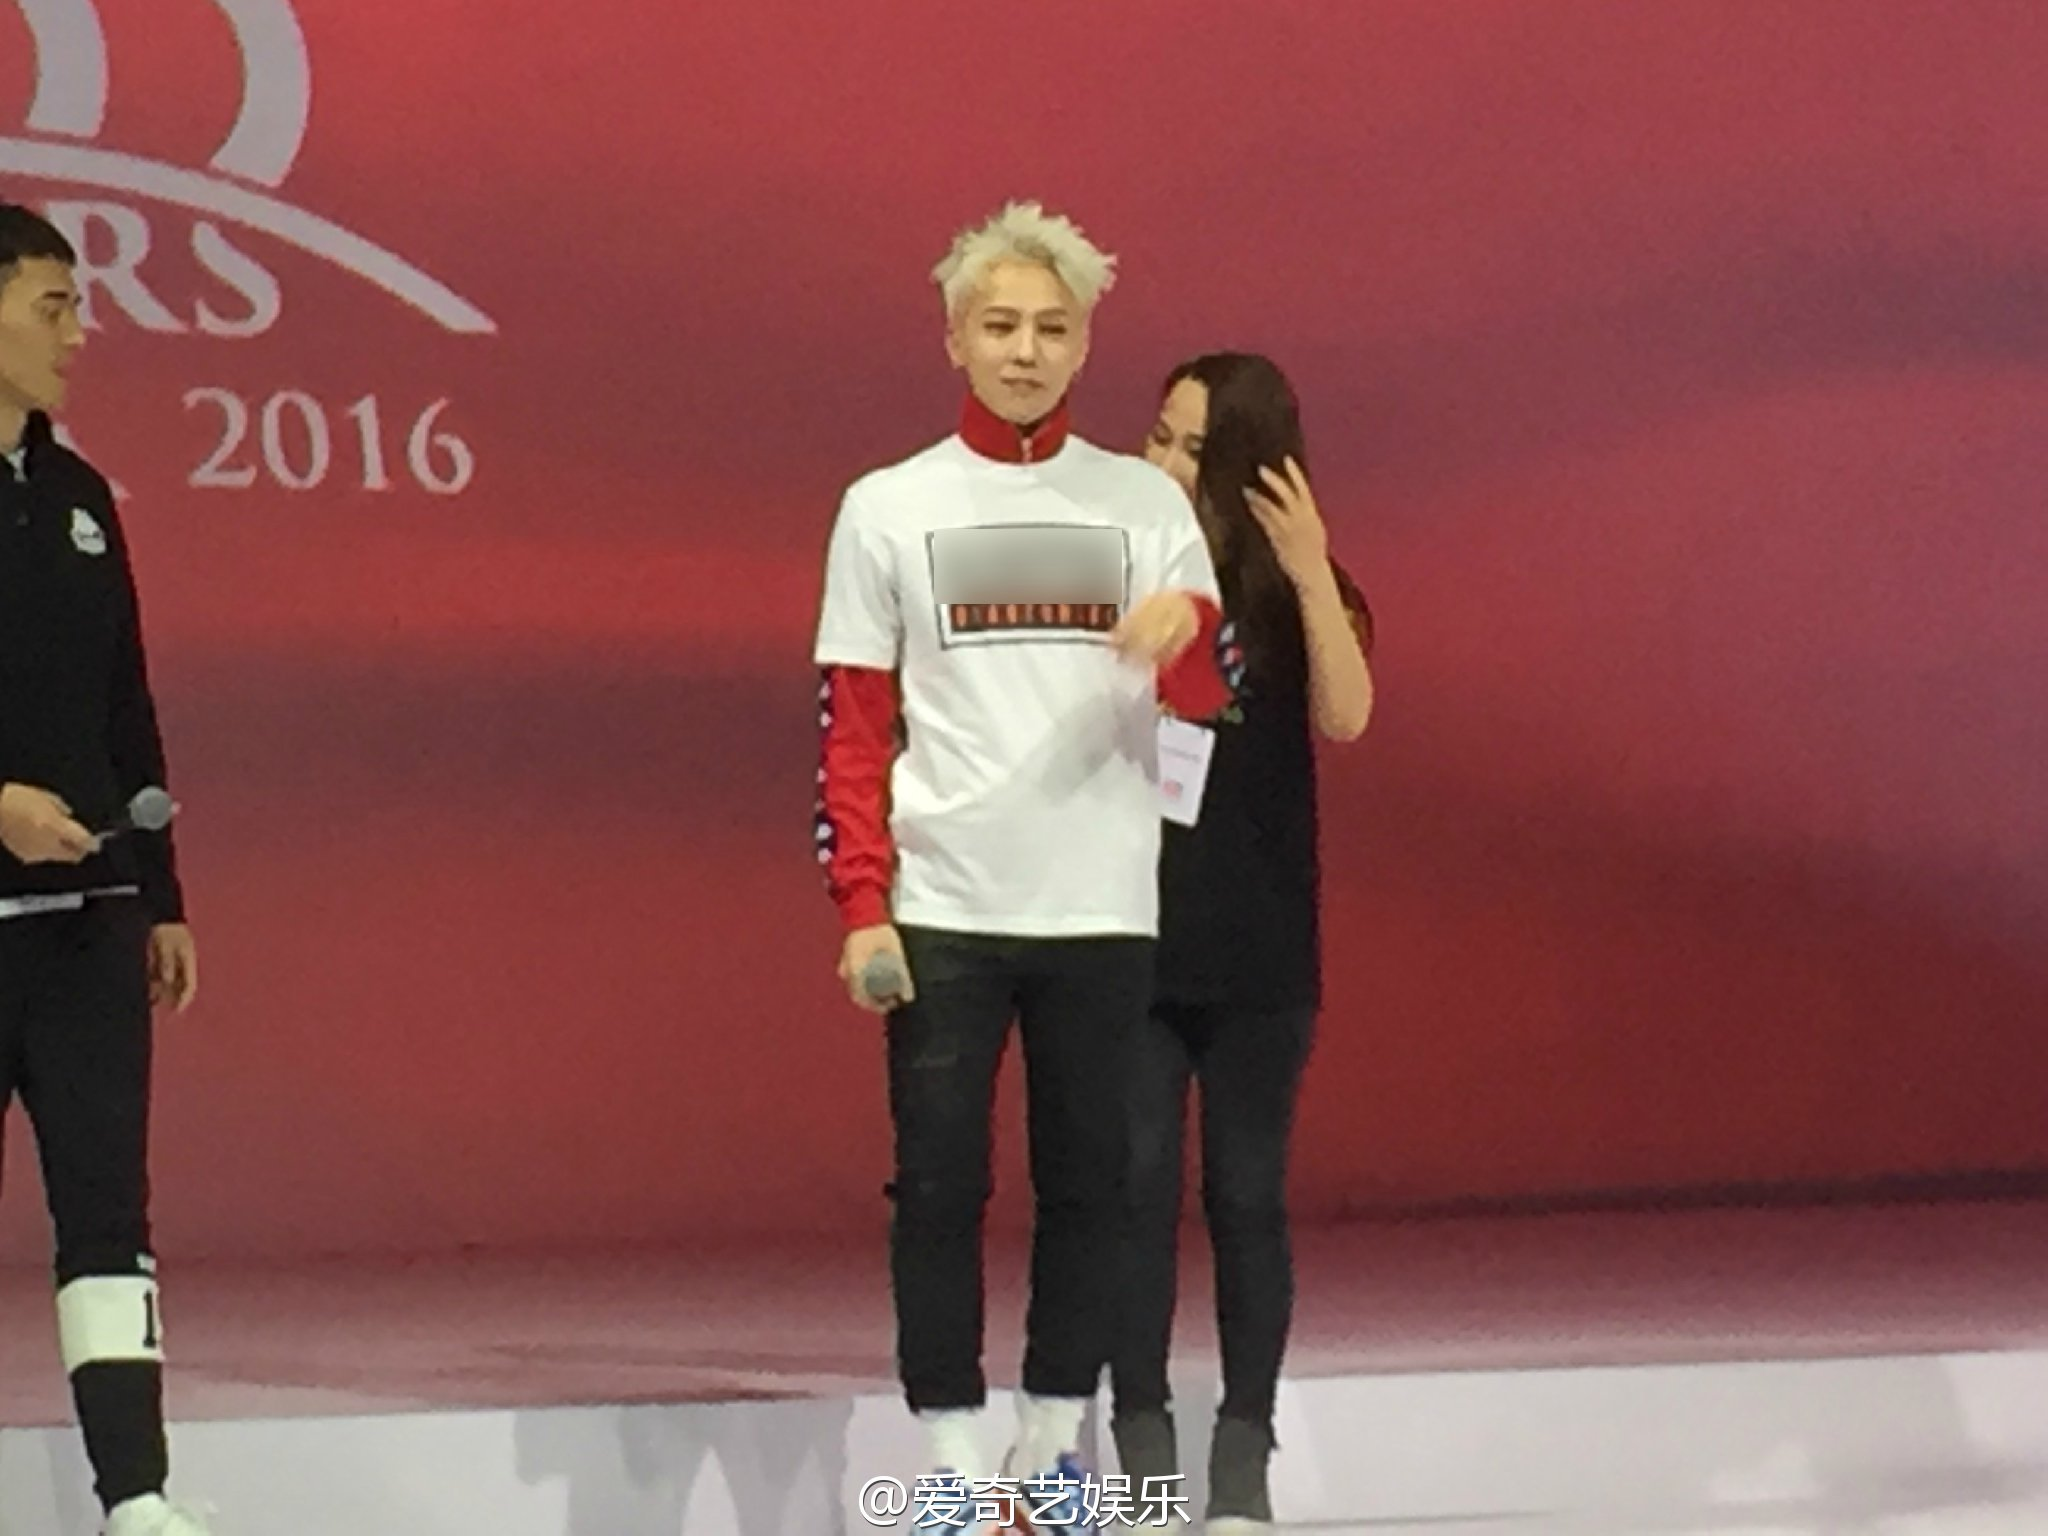 G-Dragon - Kappa 100th Anniversary Event - 26apr2016 - Qiyiyule - 04